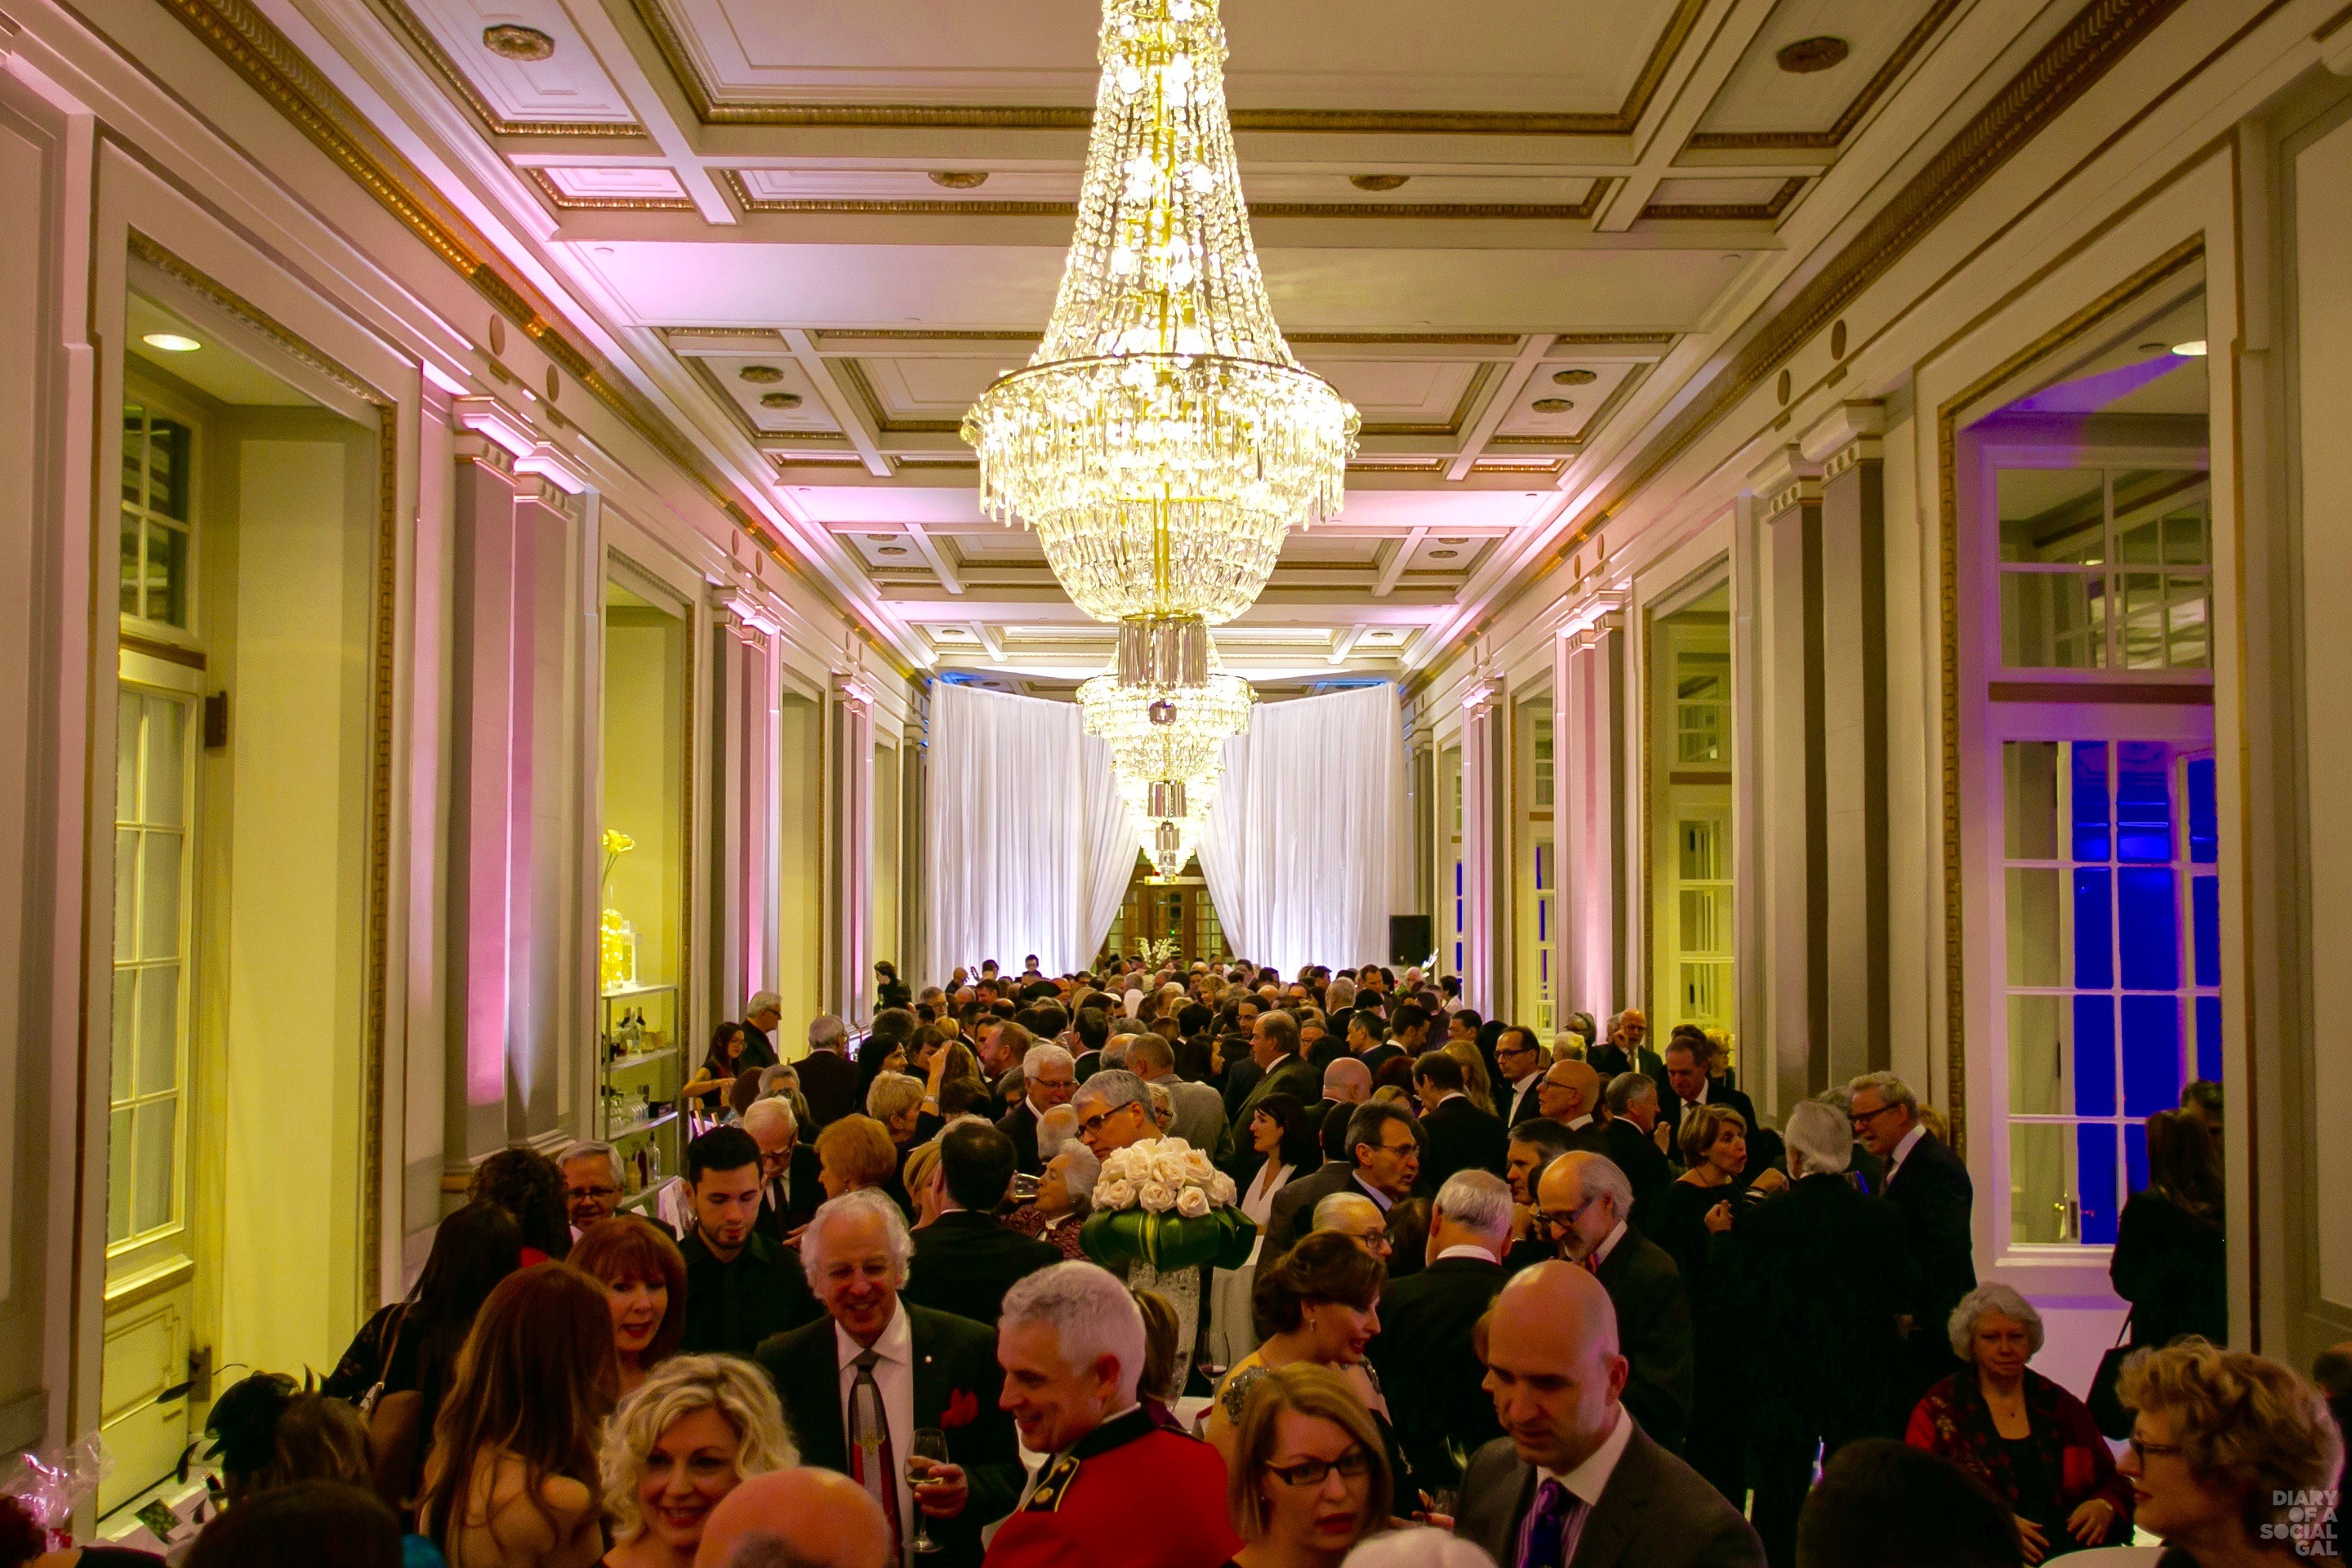 COCKTAILING DONE RIGHT AT LE WINDSOR: A sold out event attracted an A-list crowd at the recent Château Ramezay Gala Heritage 375 at Le Windsor. DAN PROKOPOWICZ